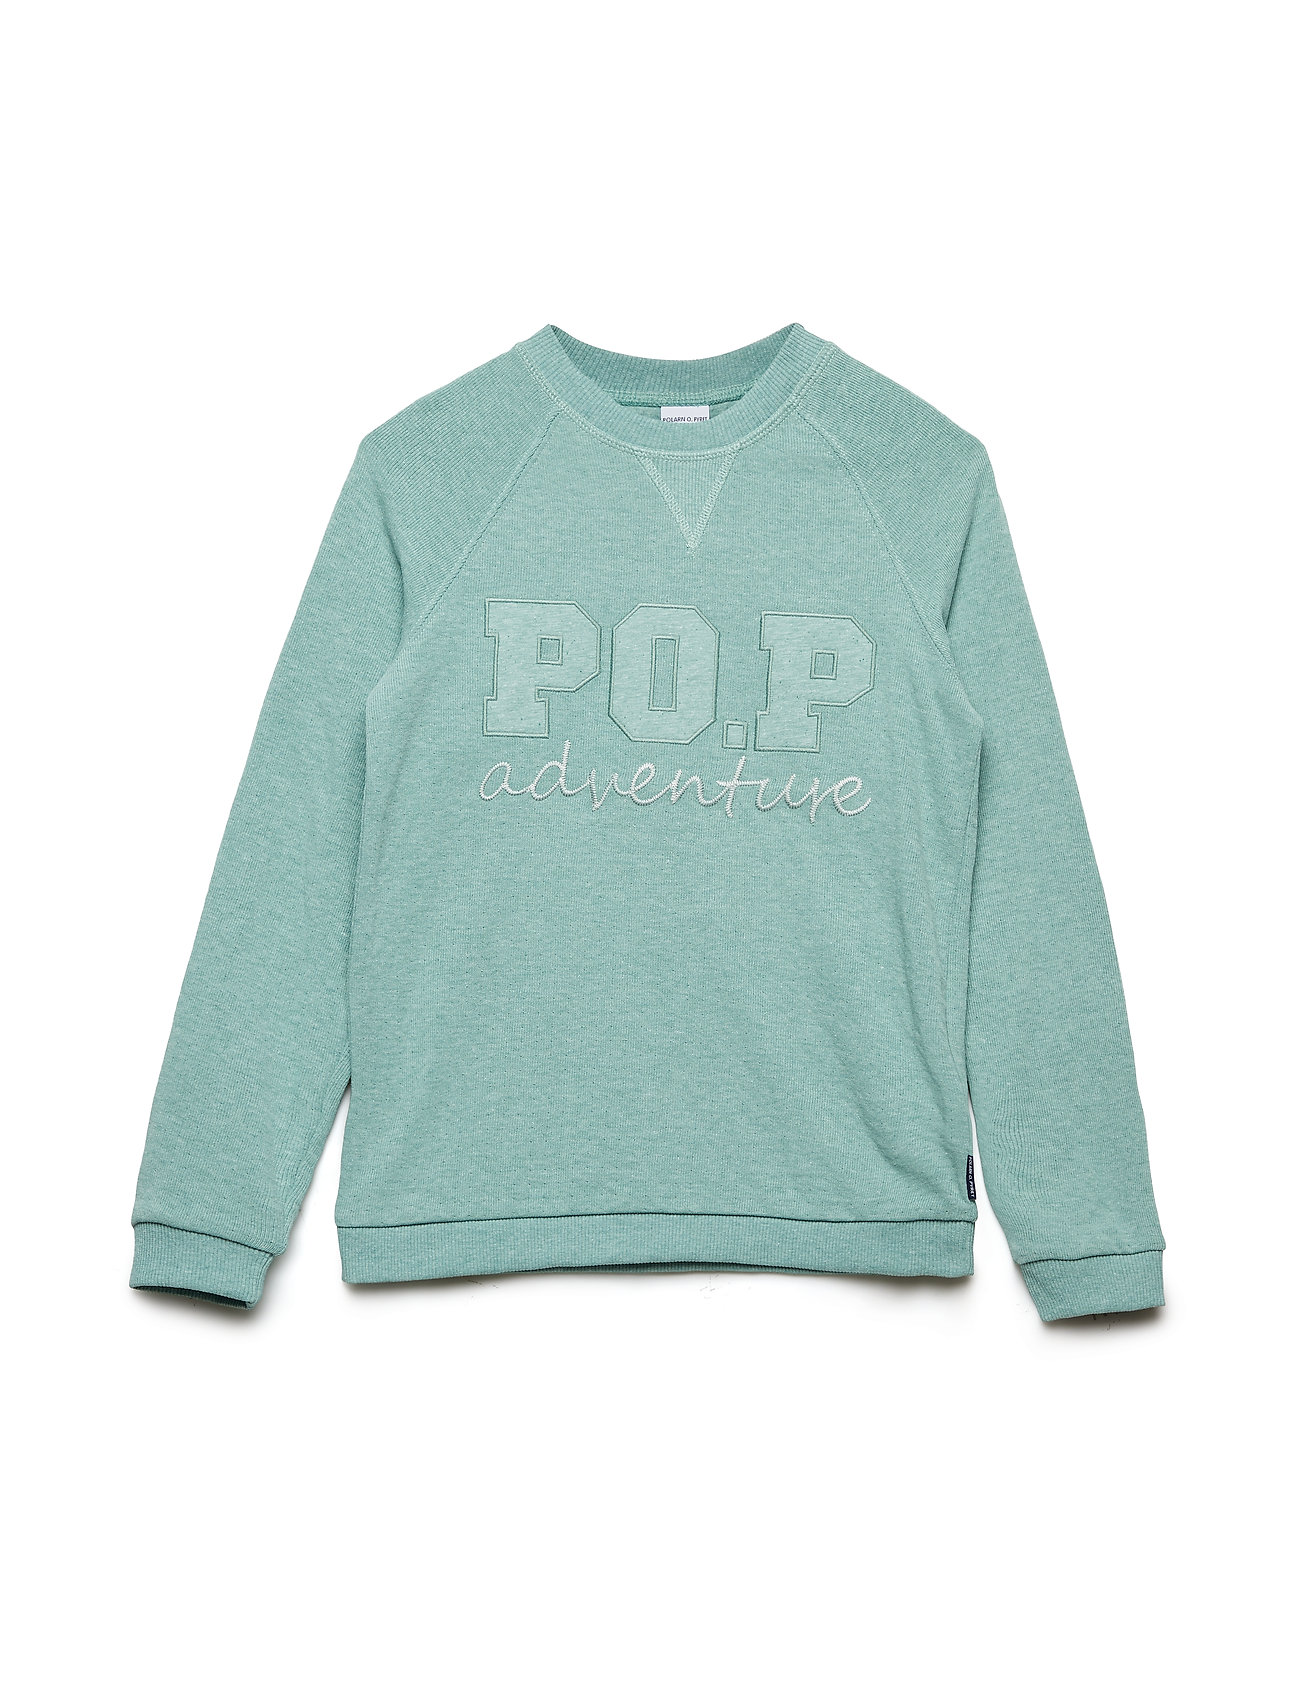 Polarn O. Pyret Sweater Long Sleeve  School